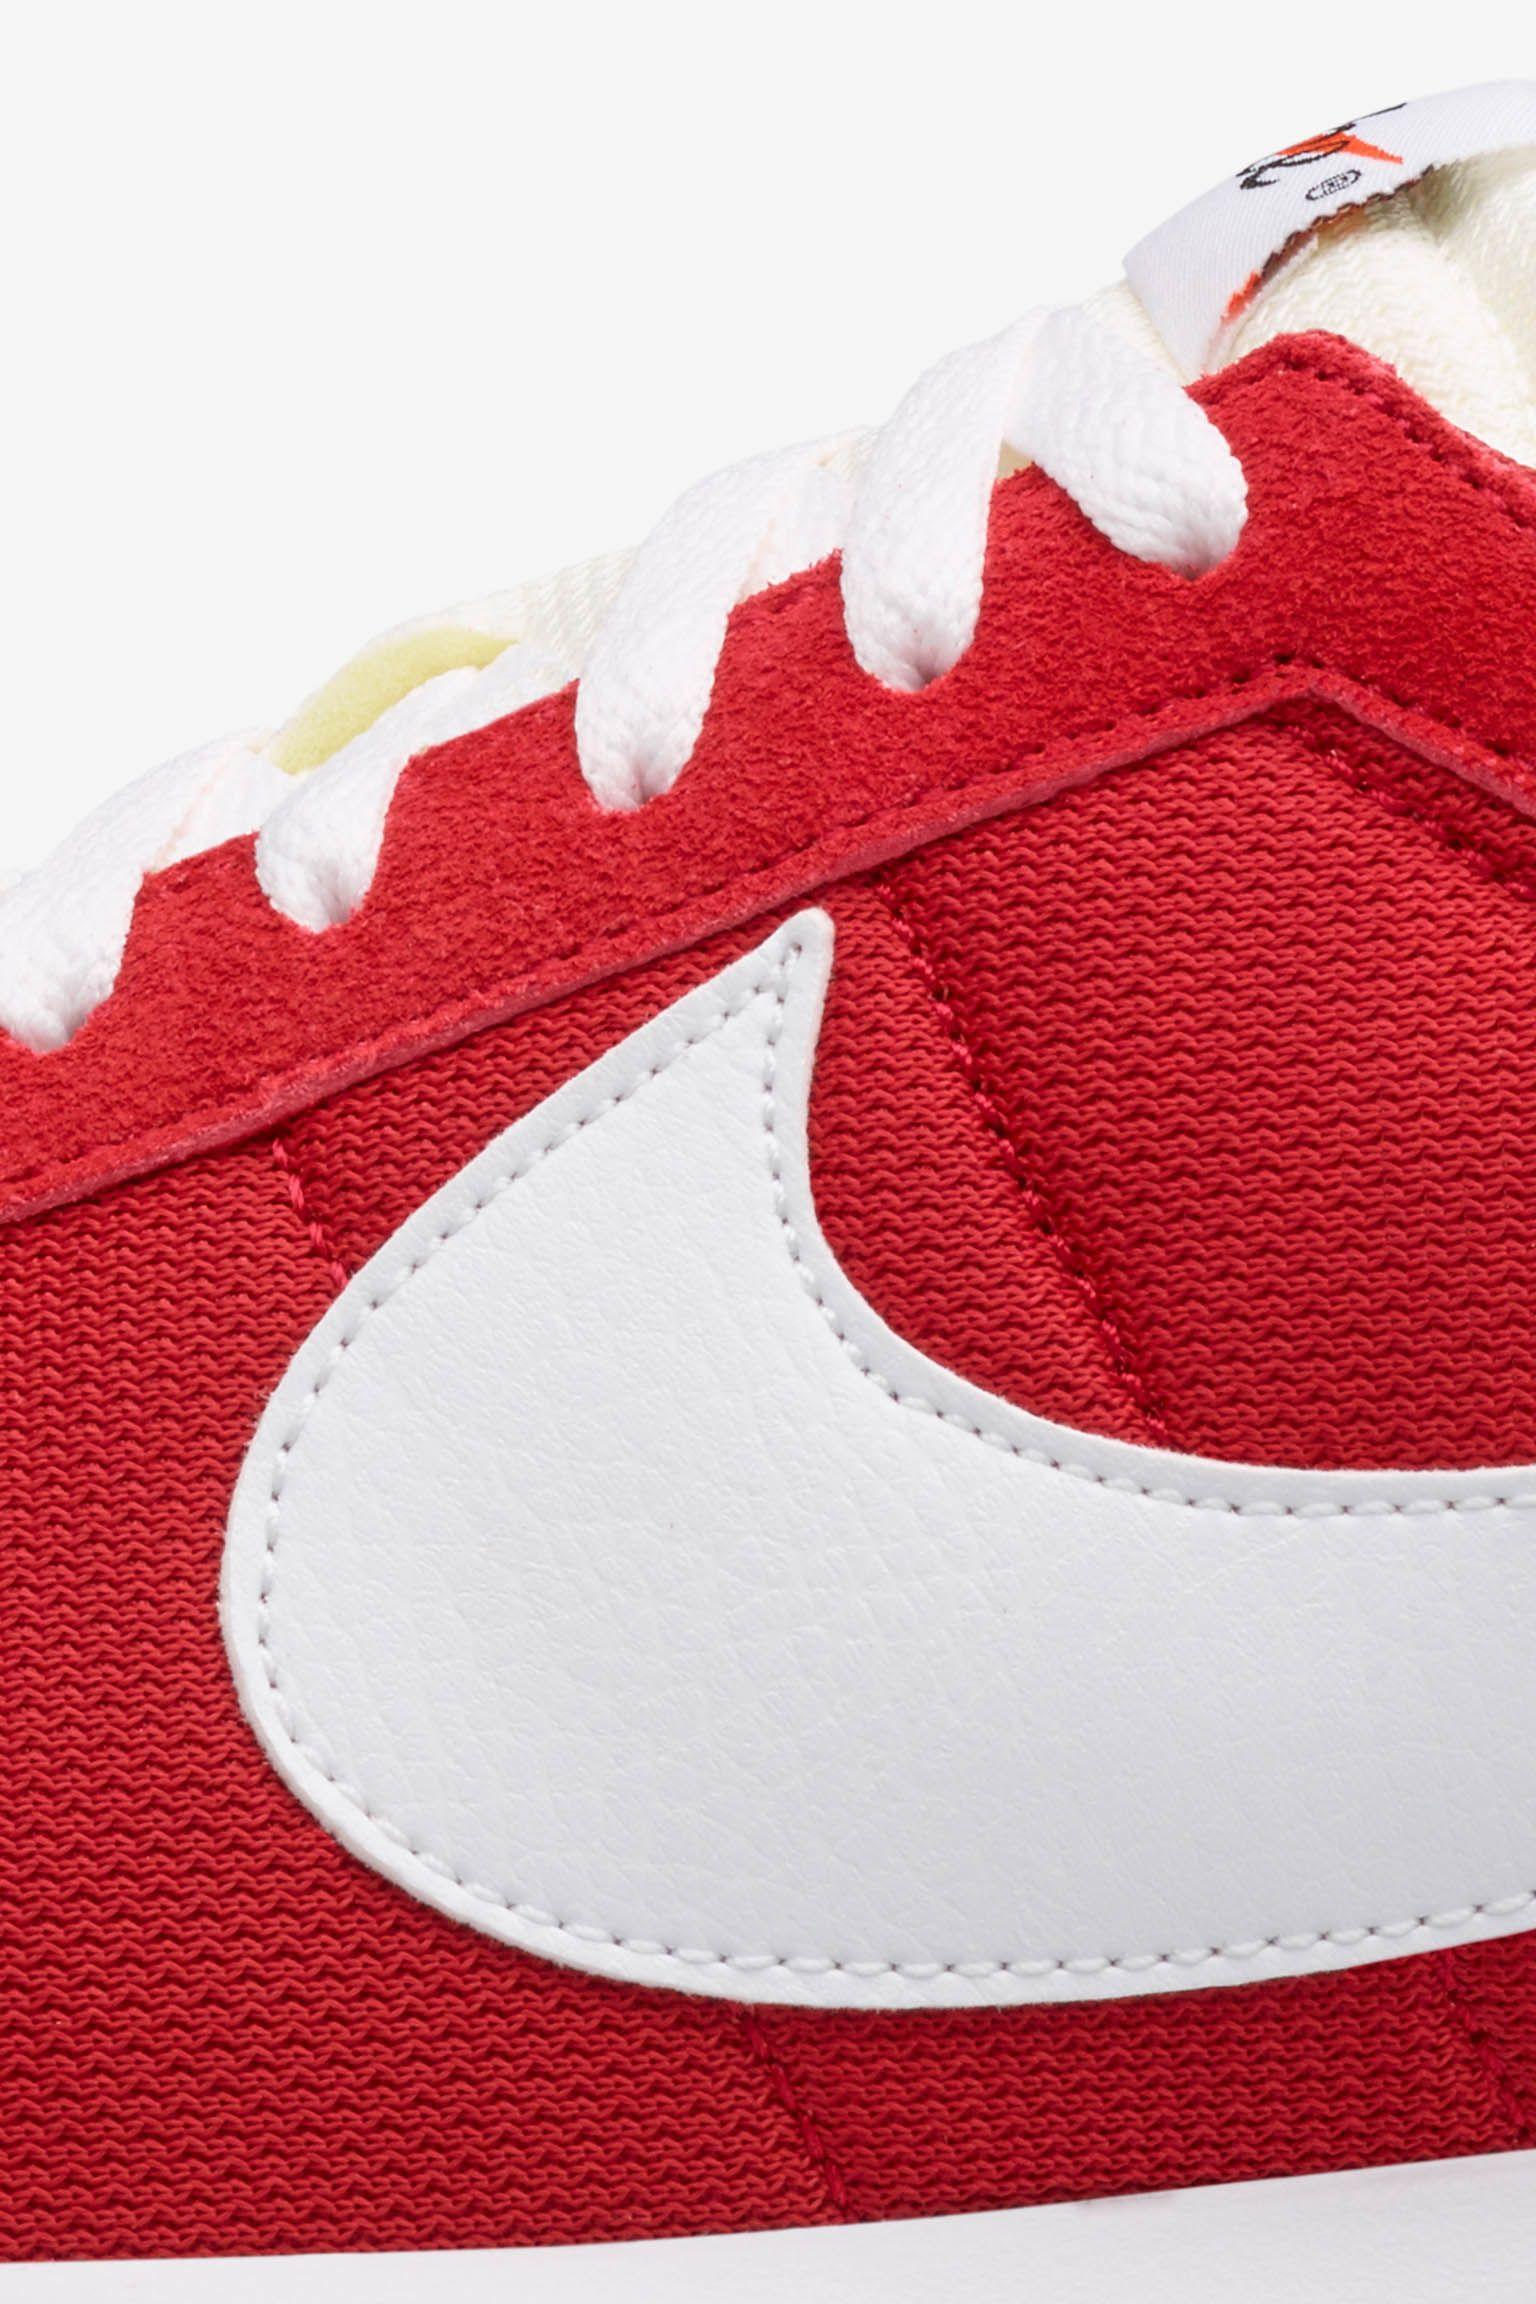 Nike Roshe LD-1000 'Varisty Red & White'